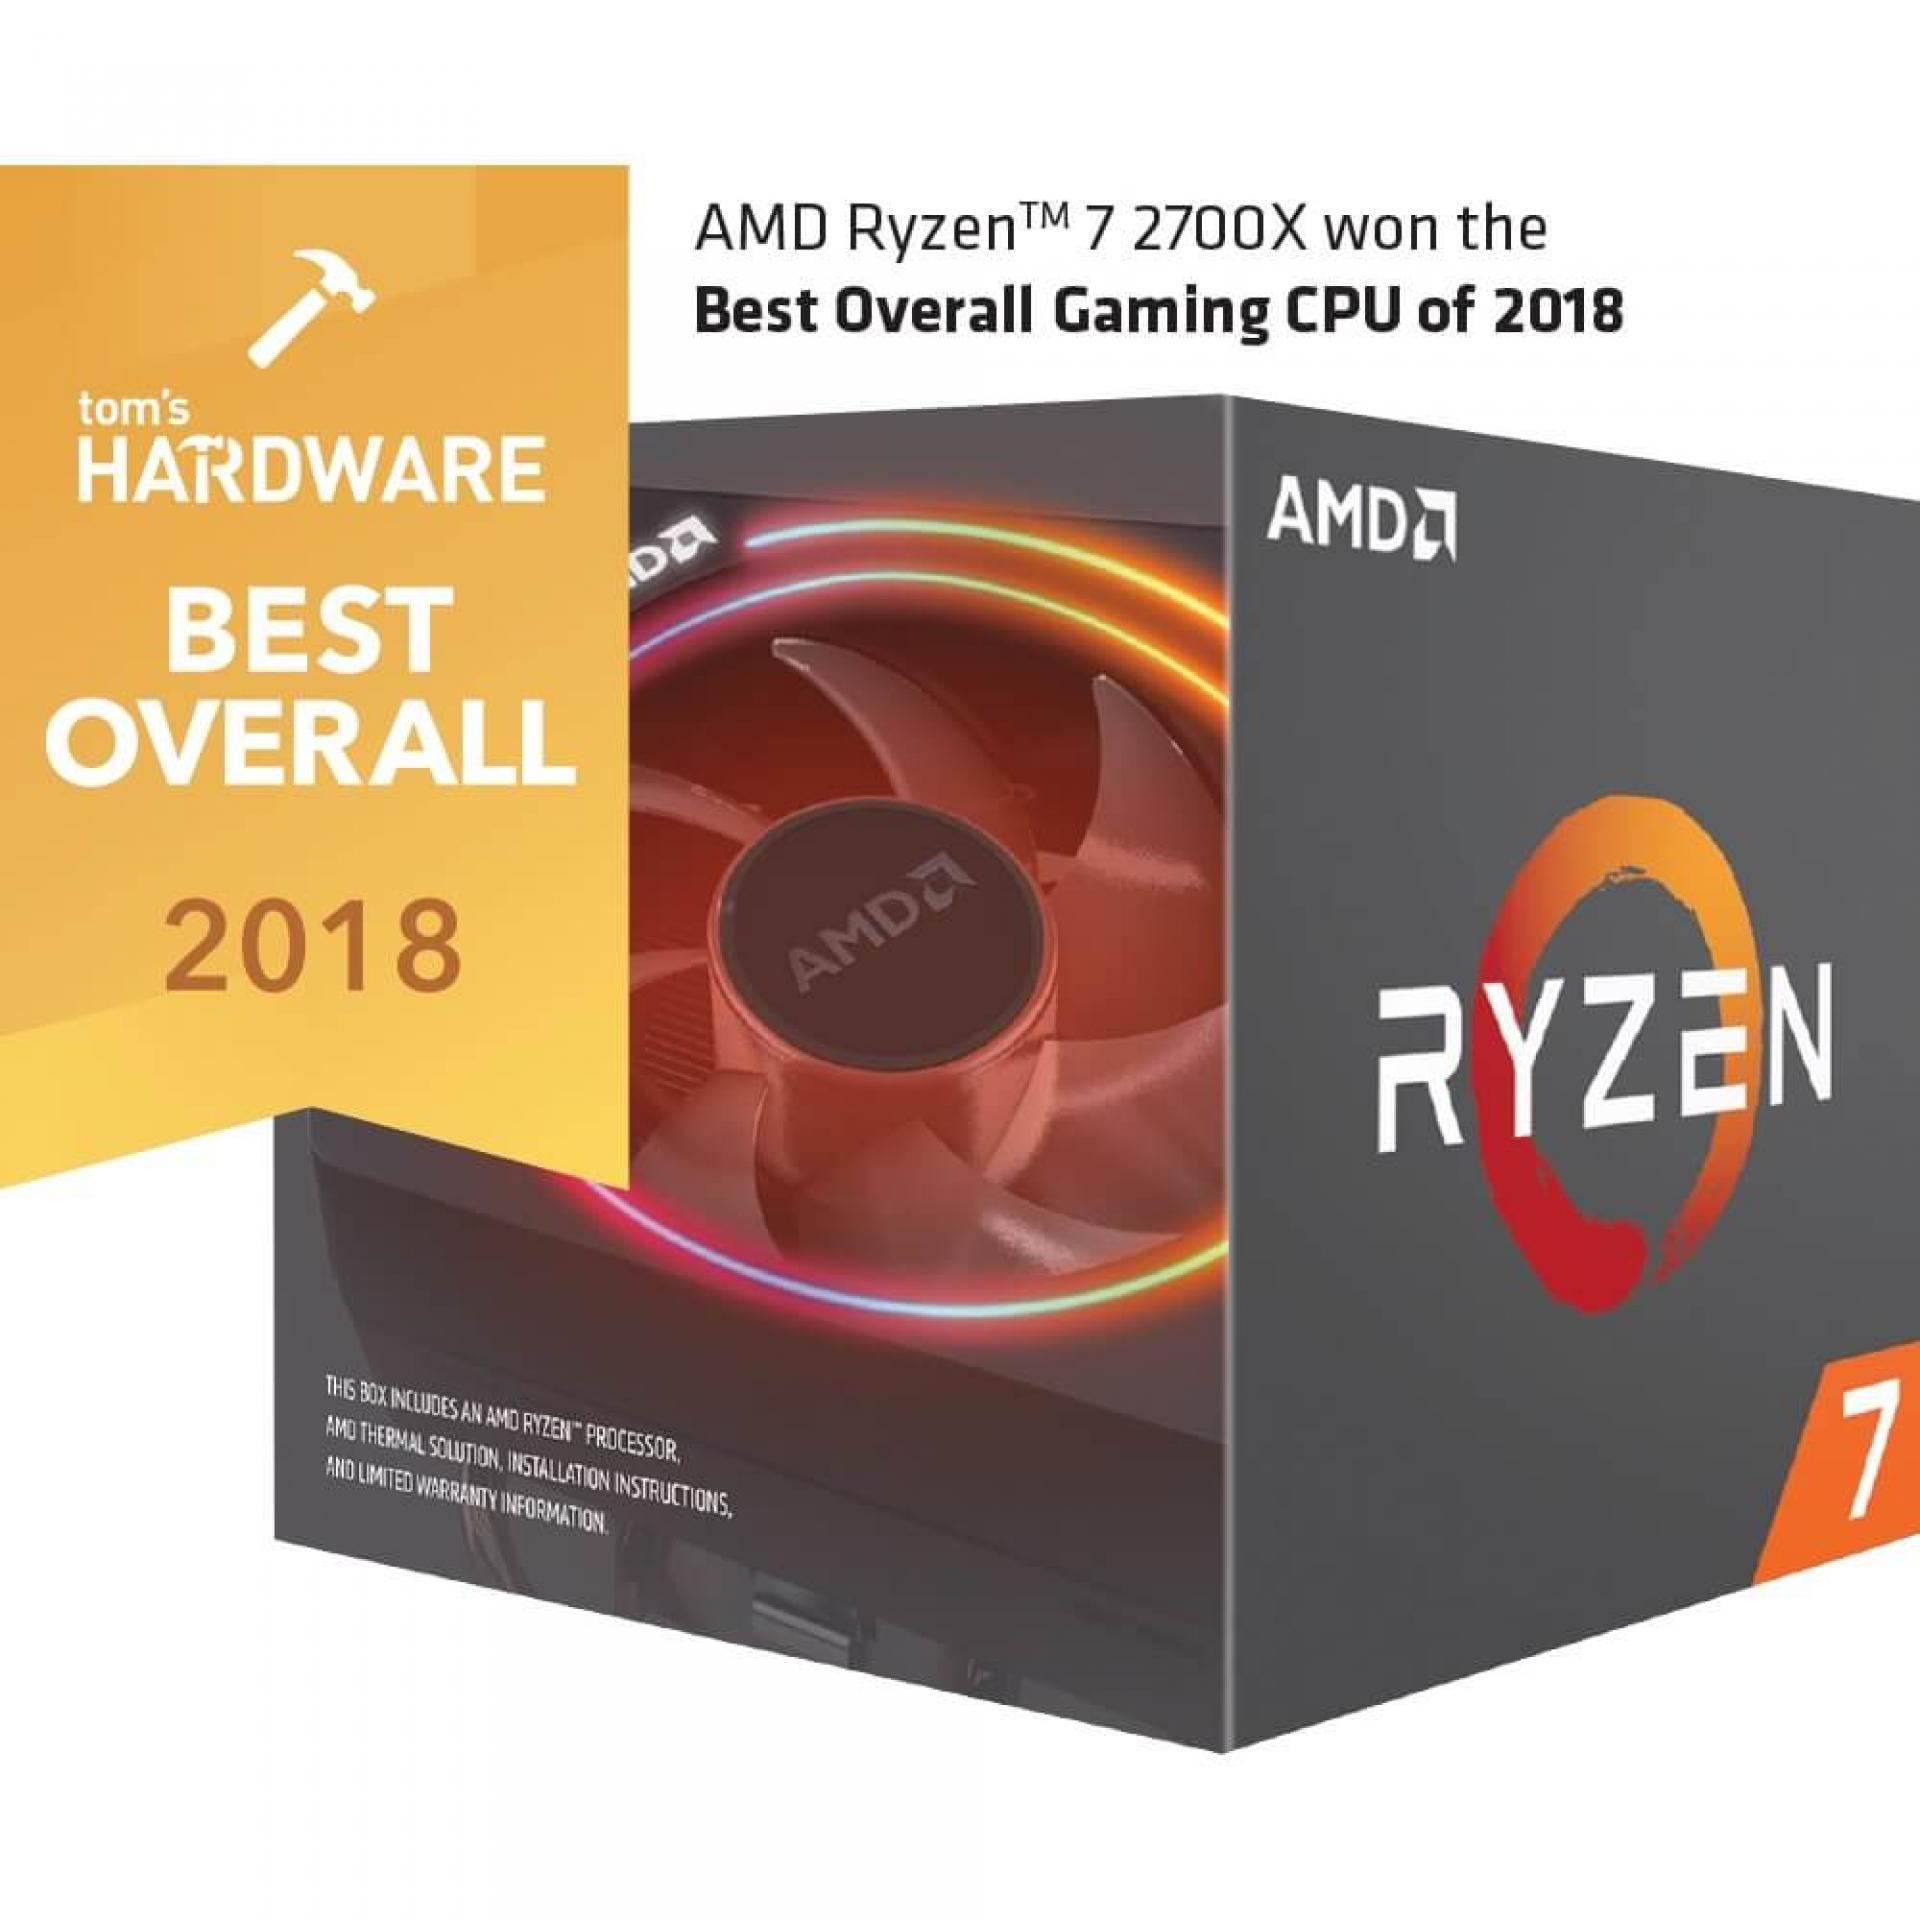 Buy Amd Octa Core Ryzen 7 2700X at Lowest Price in India